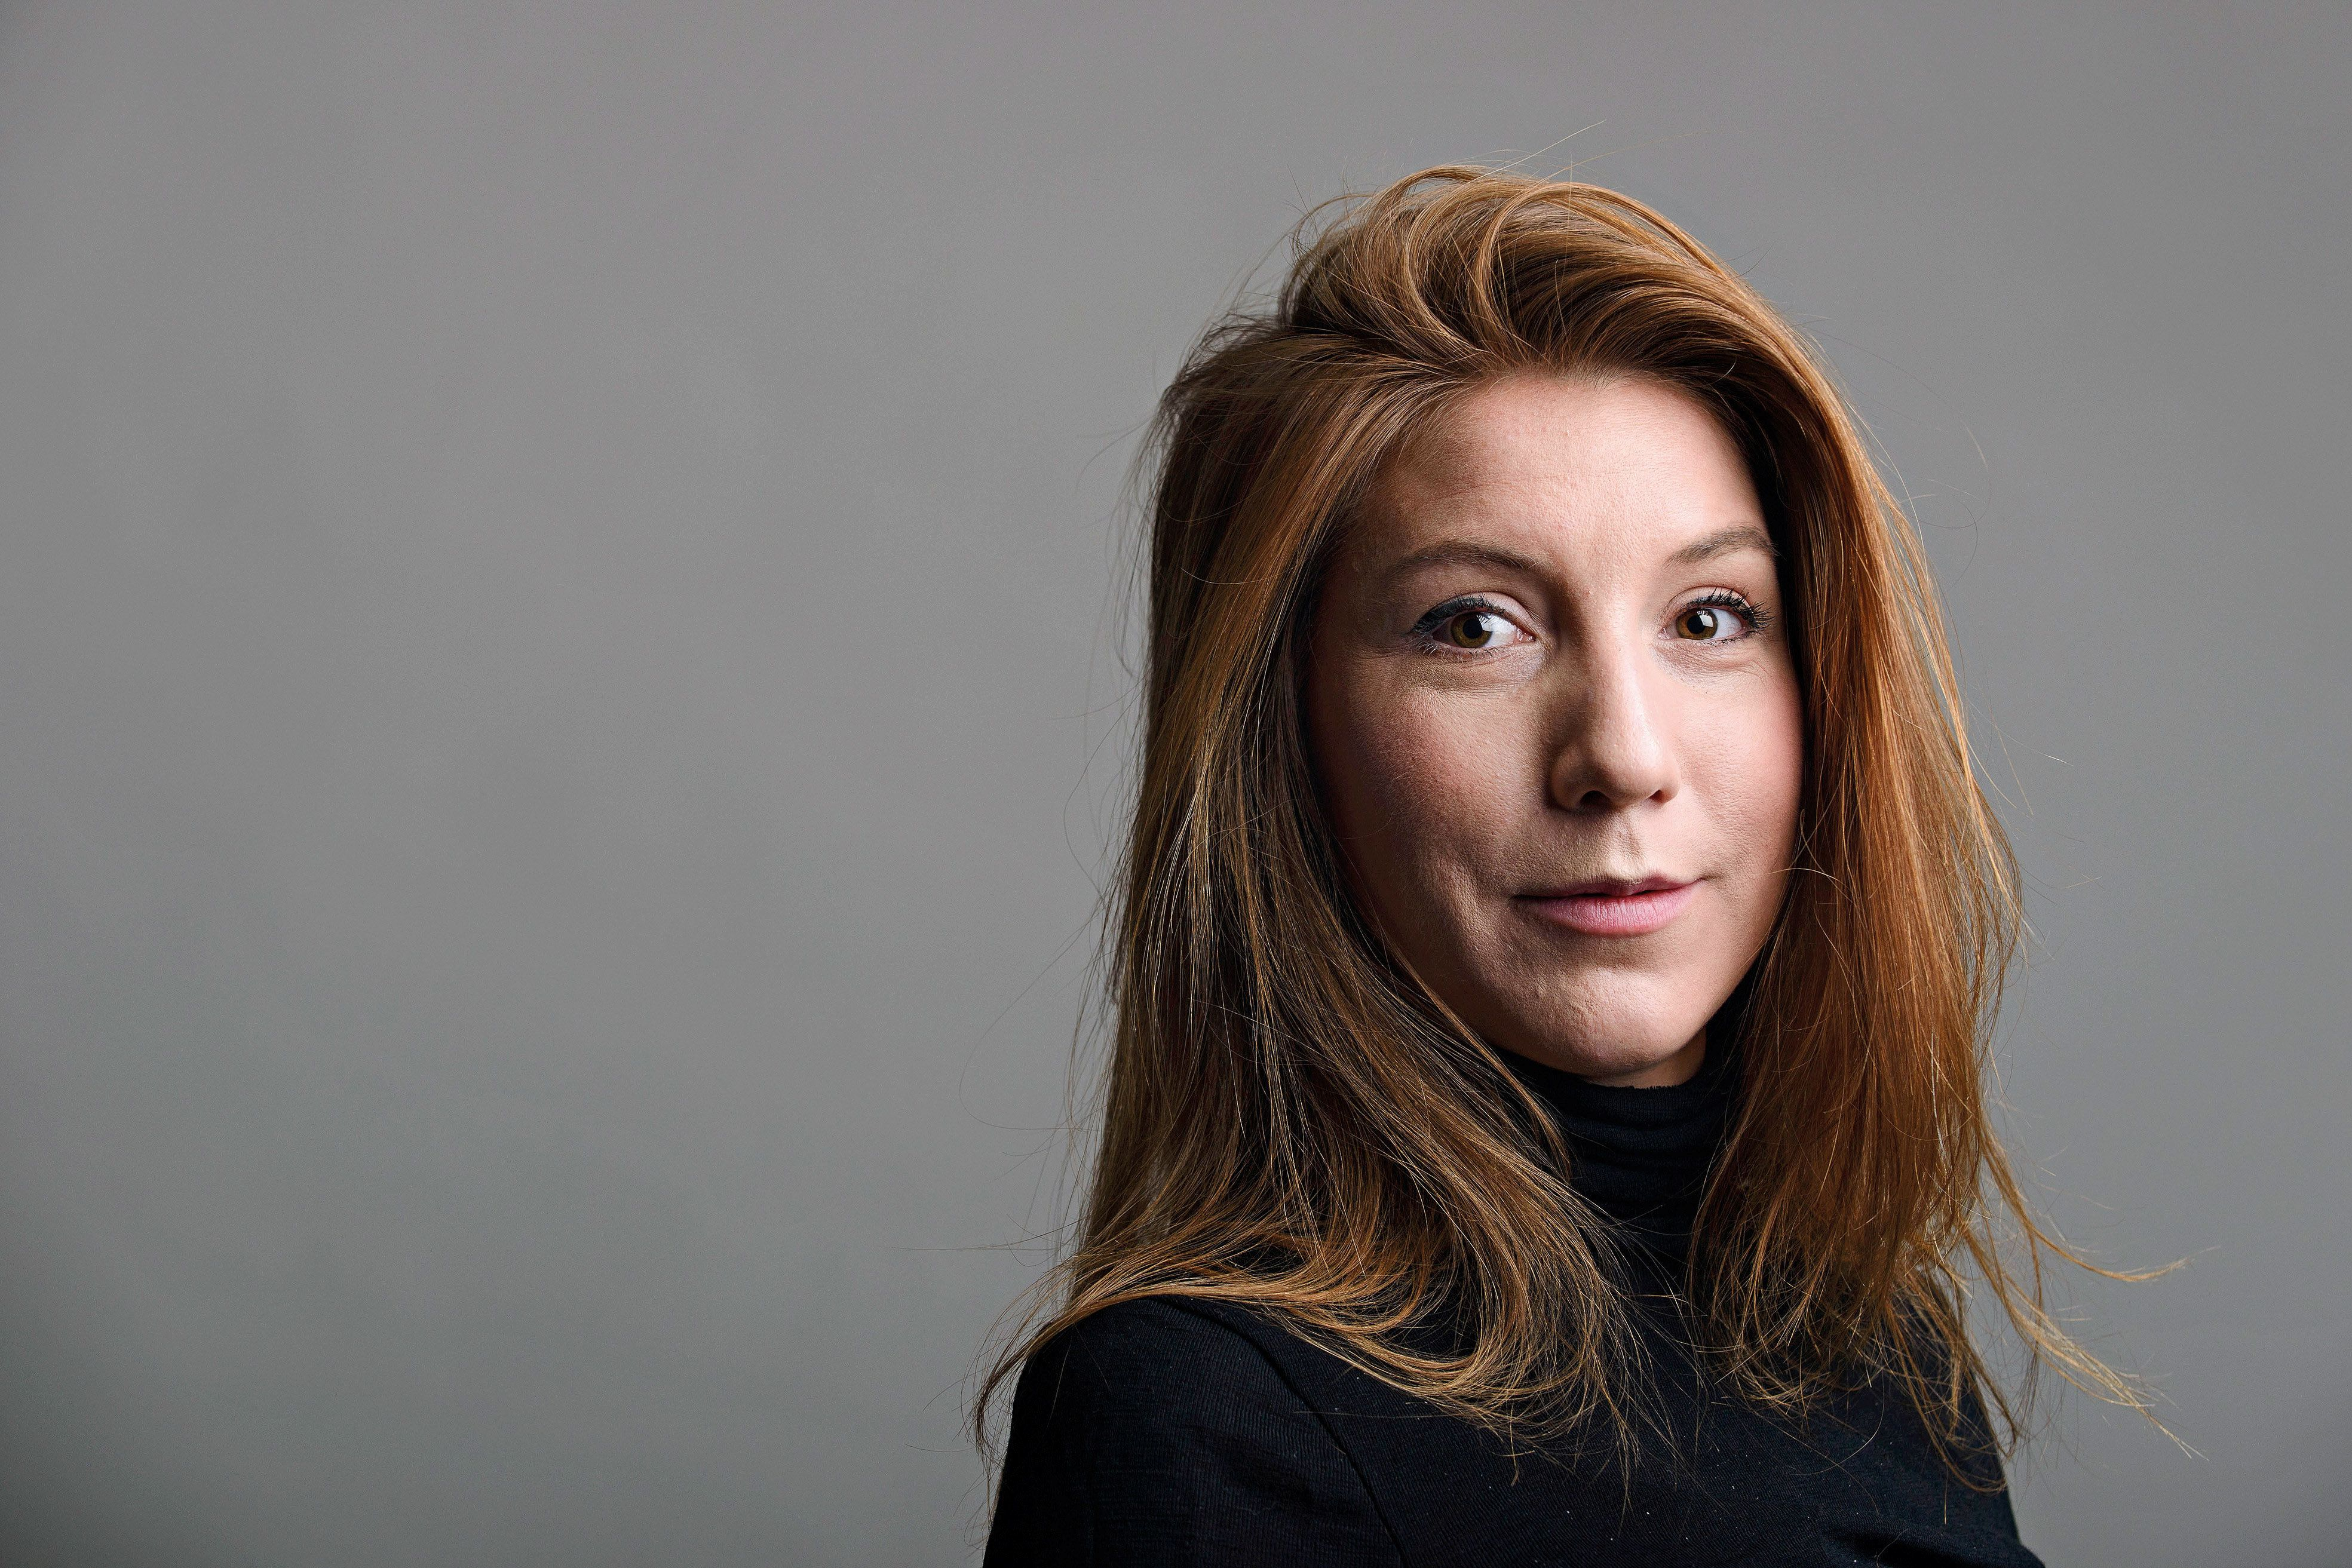 Saw Discovered By Police Divers In Kim Wall Murder